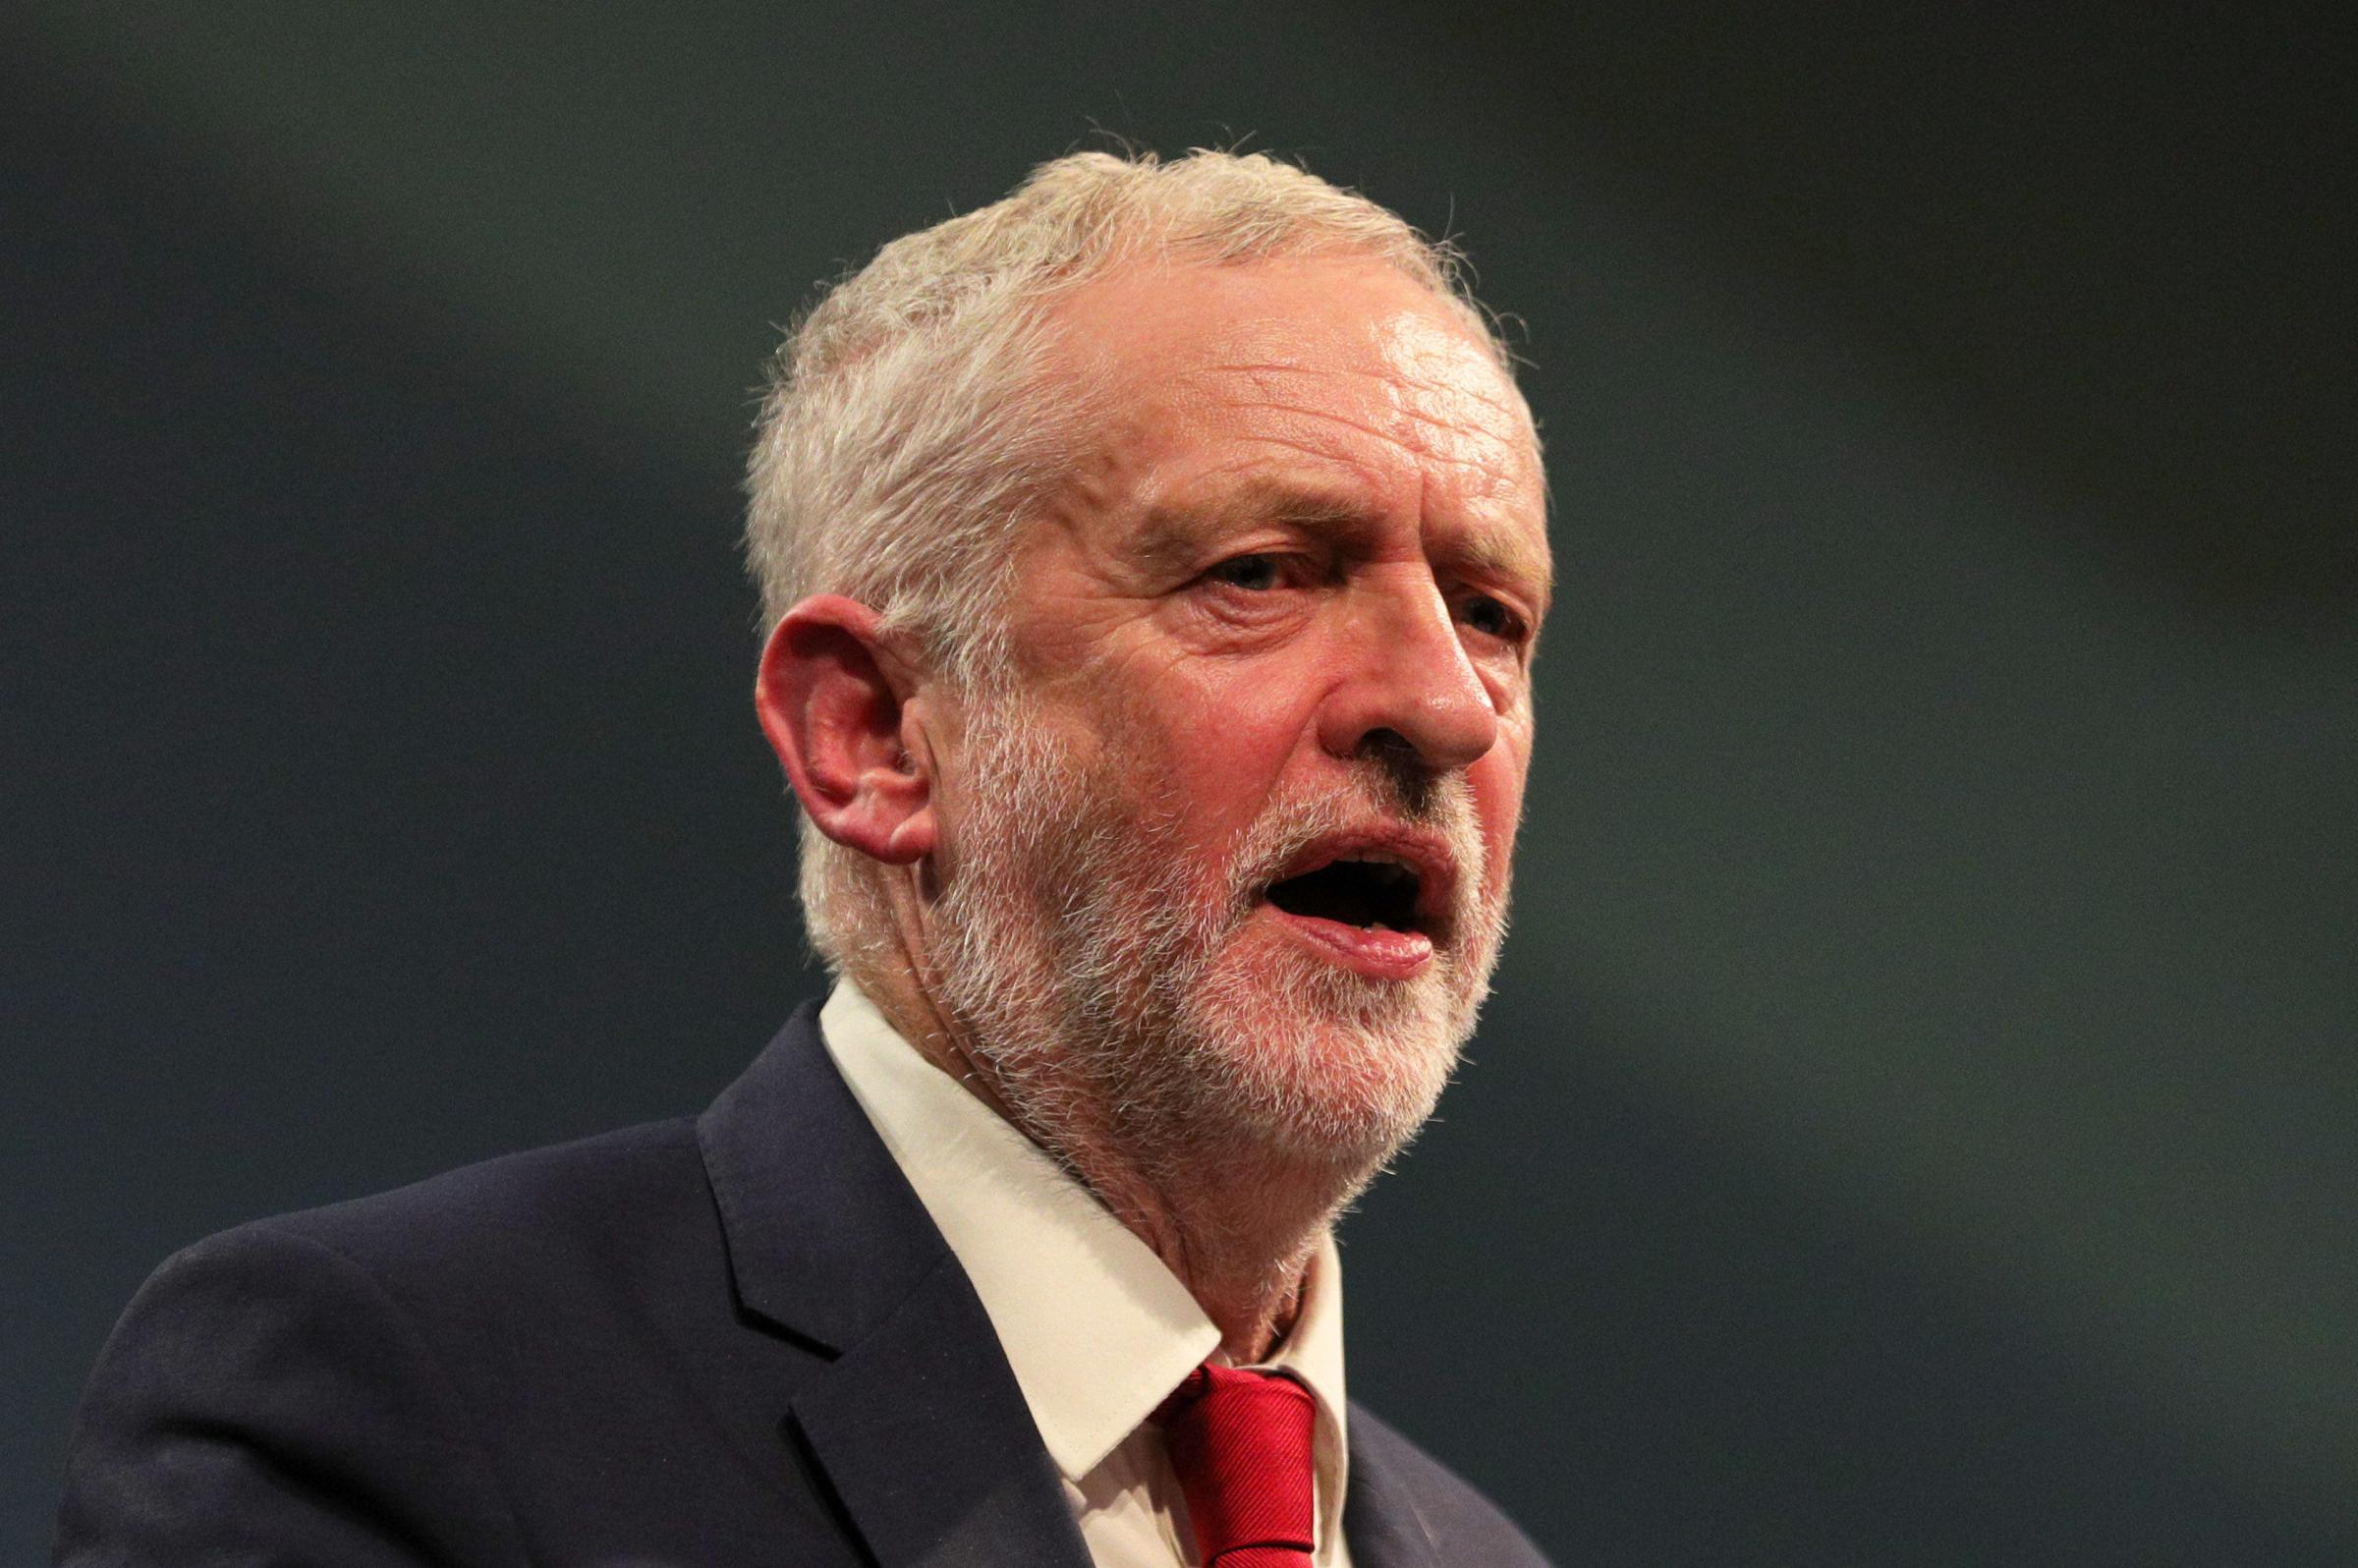 Corbyn's leadership of the Labour Party emerged directly from the rubble of these wars